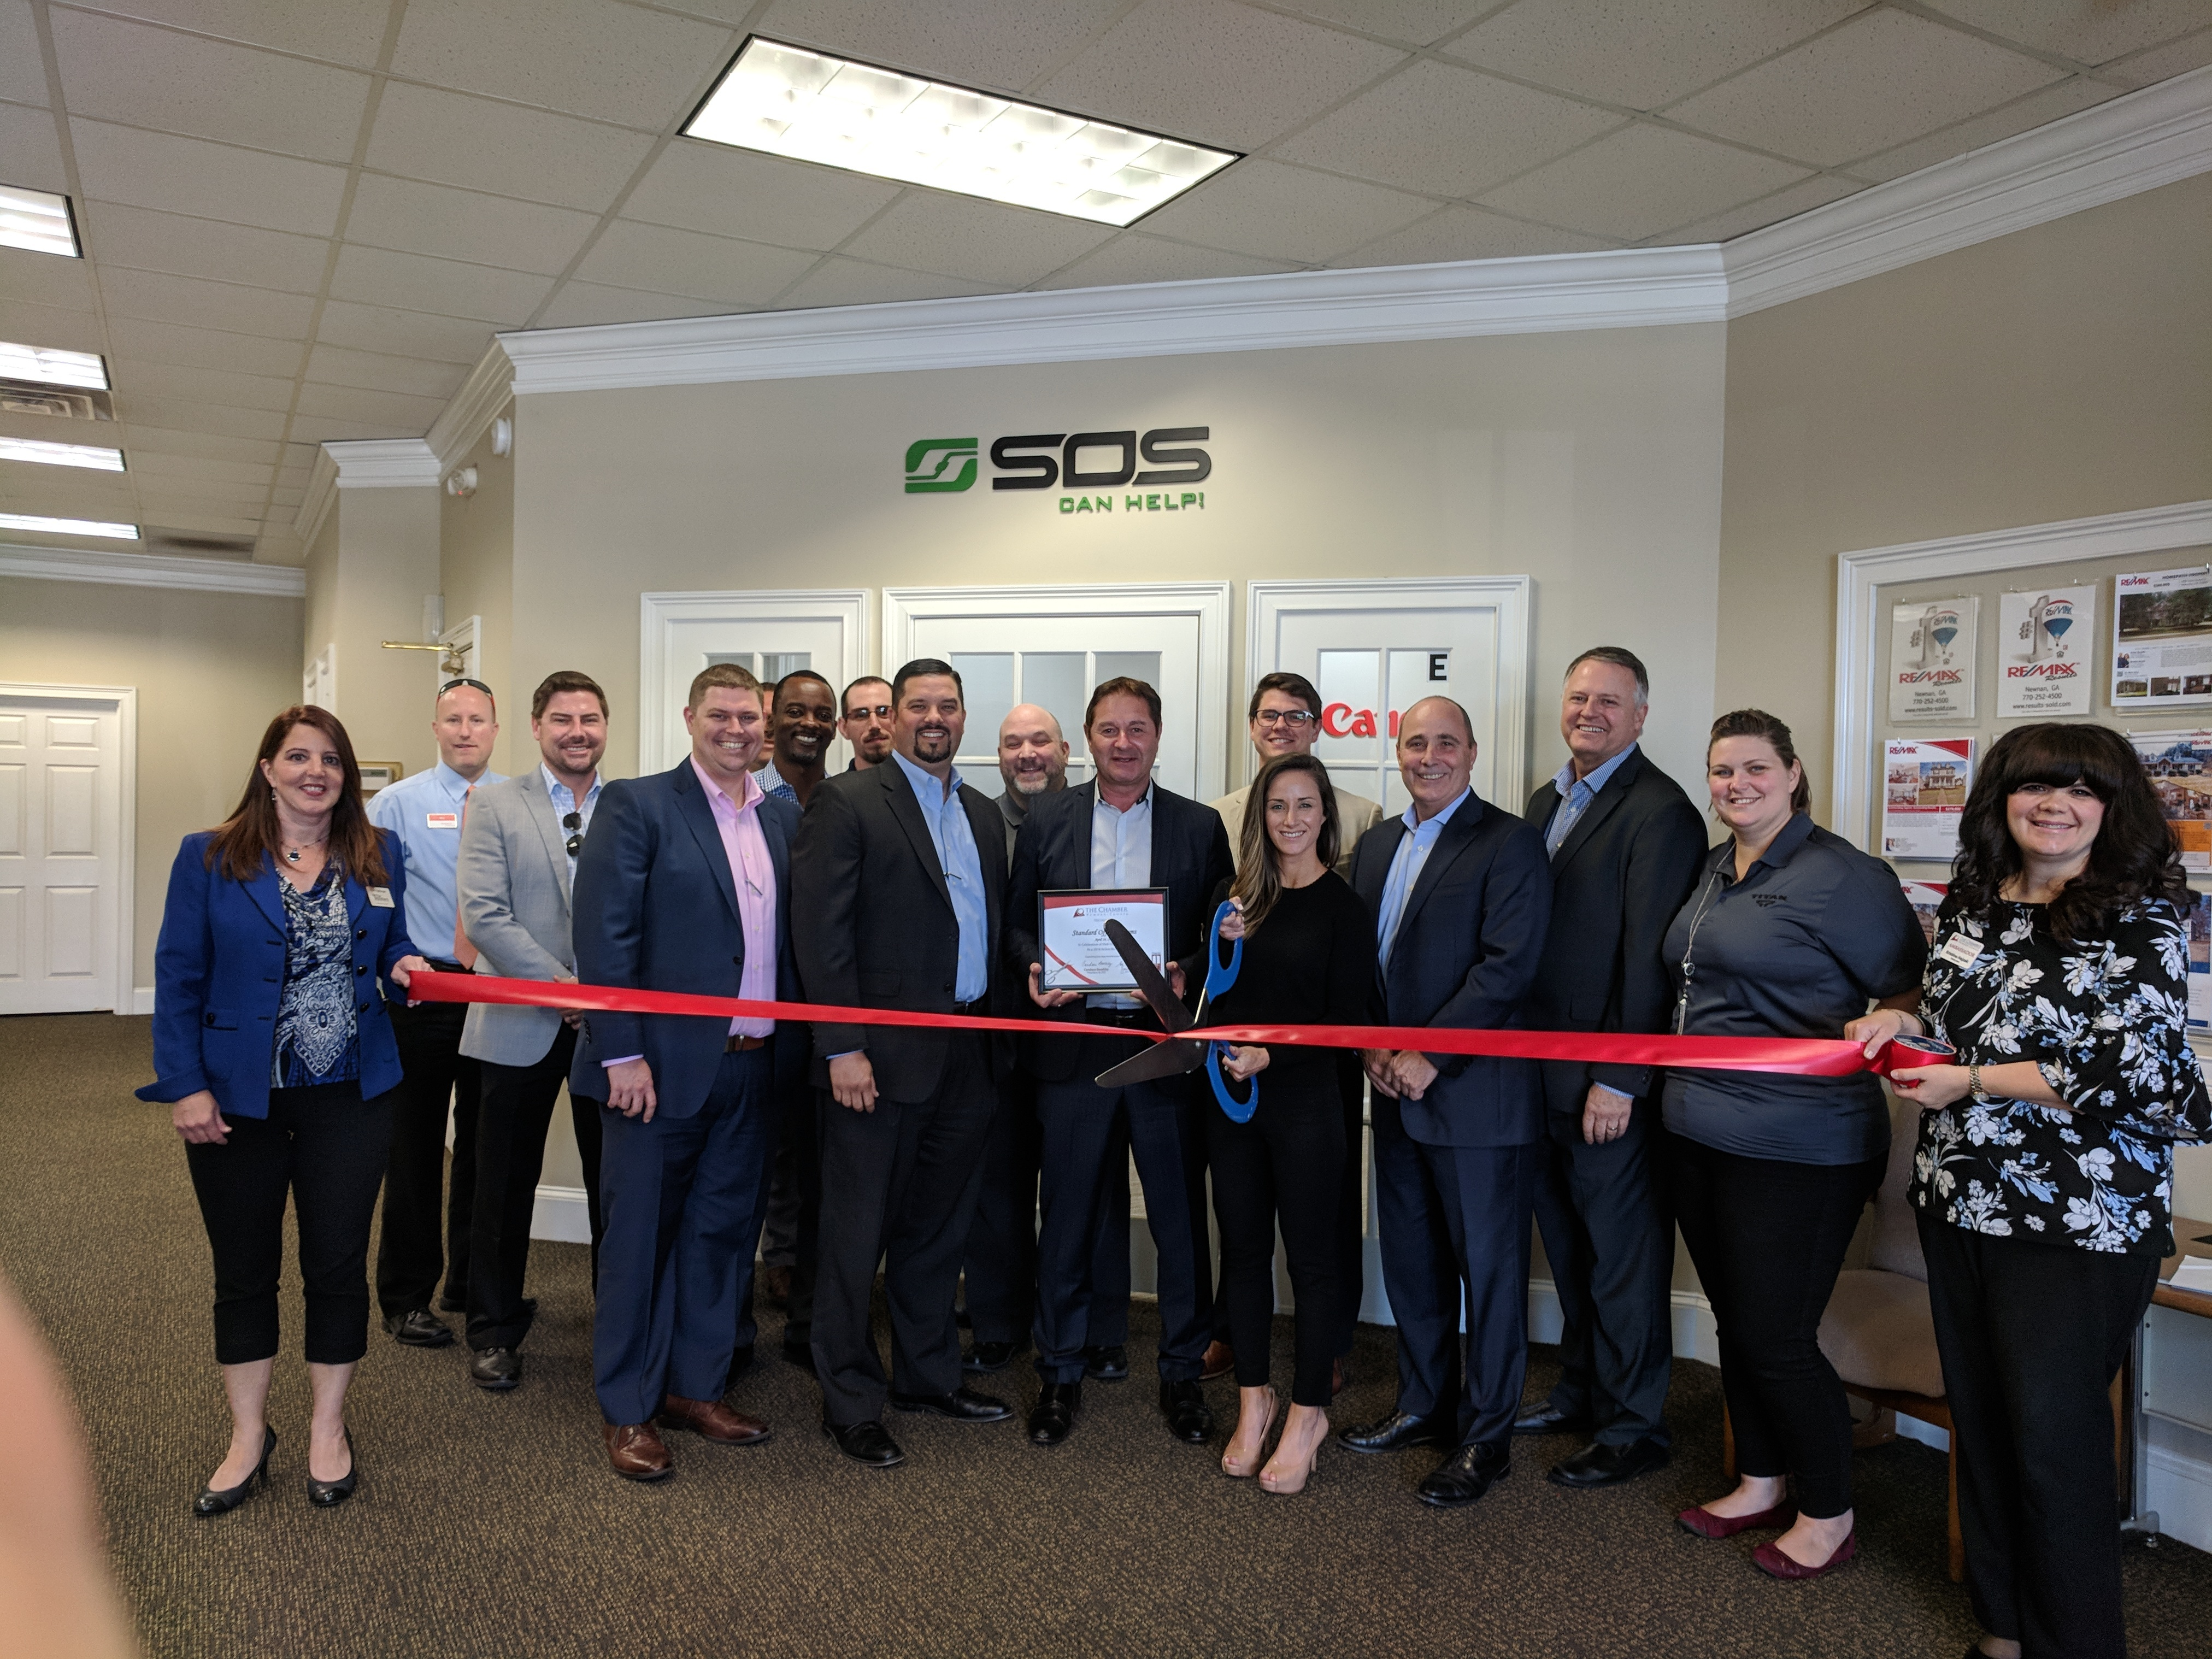 SOS Opens New South Office Building